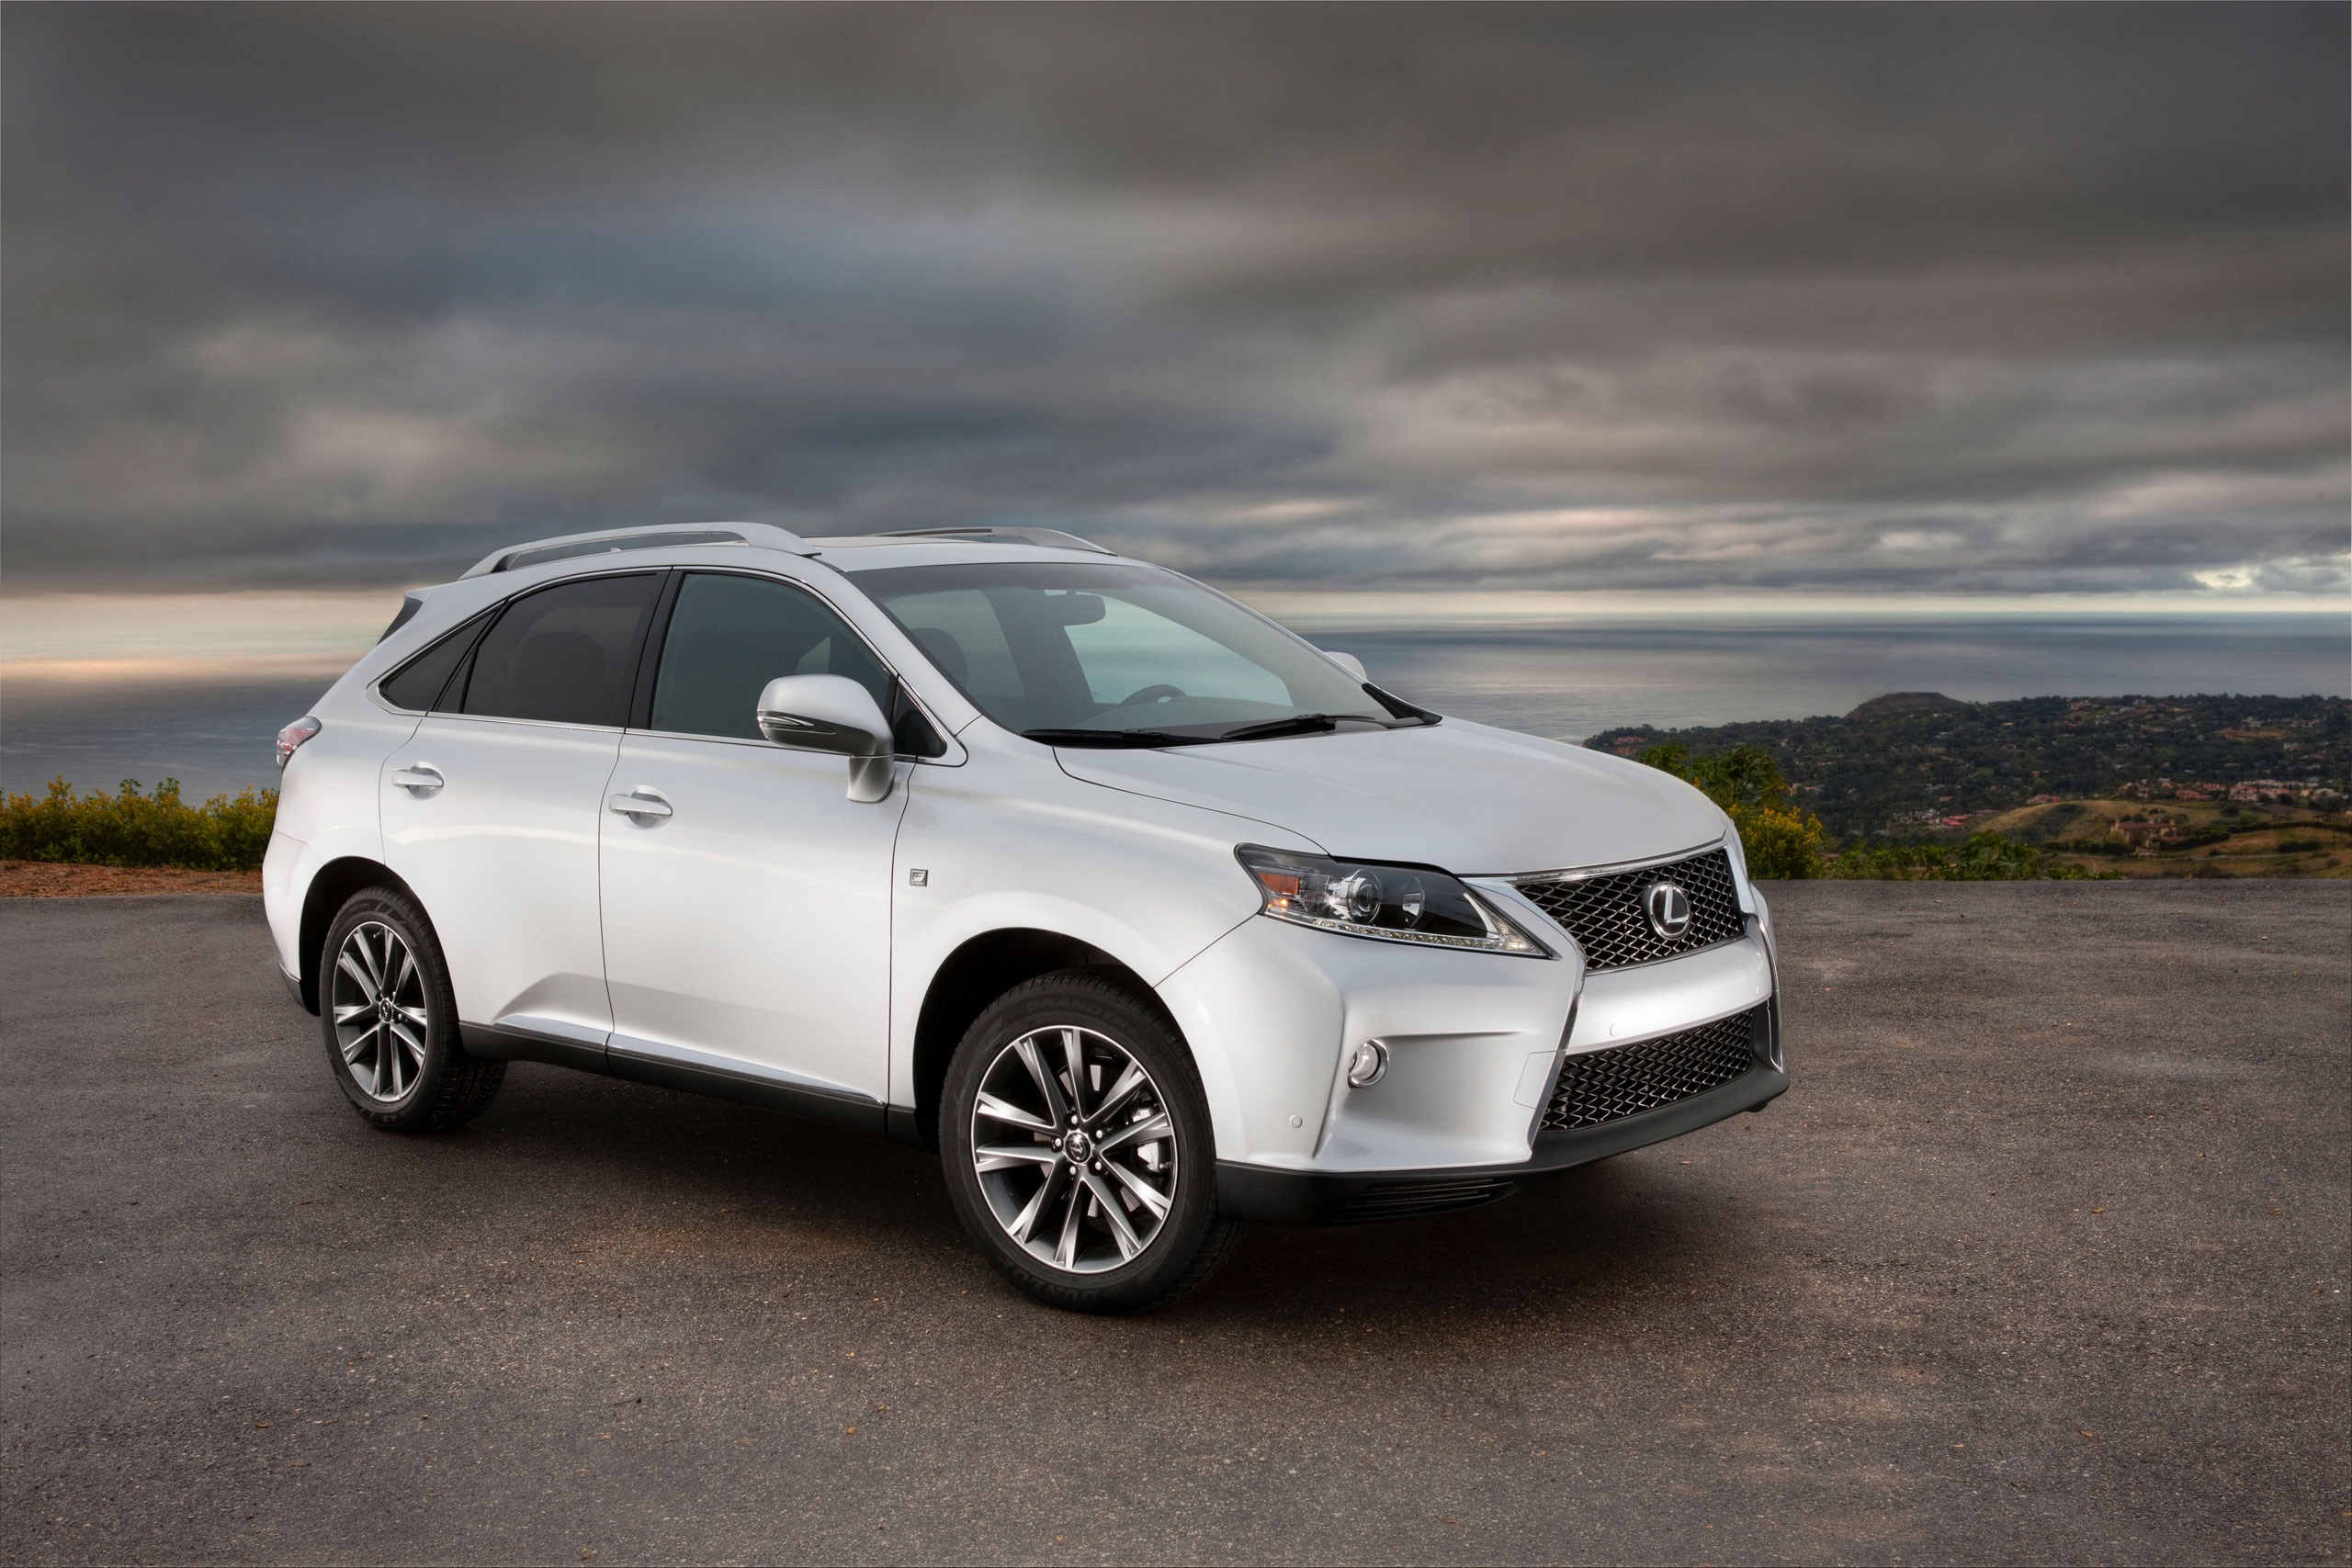 lexus rx iii 2013 wallpaper